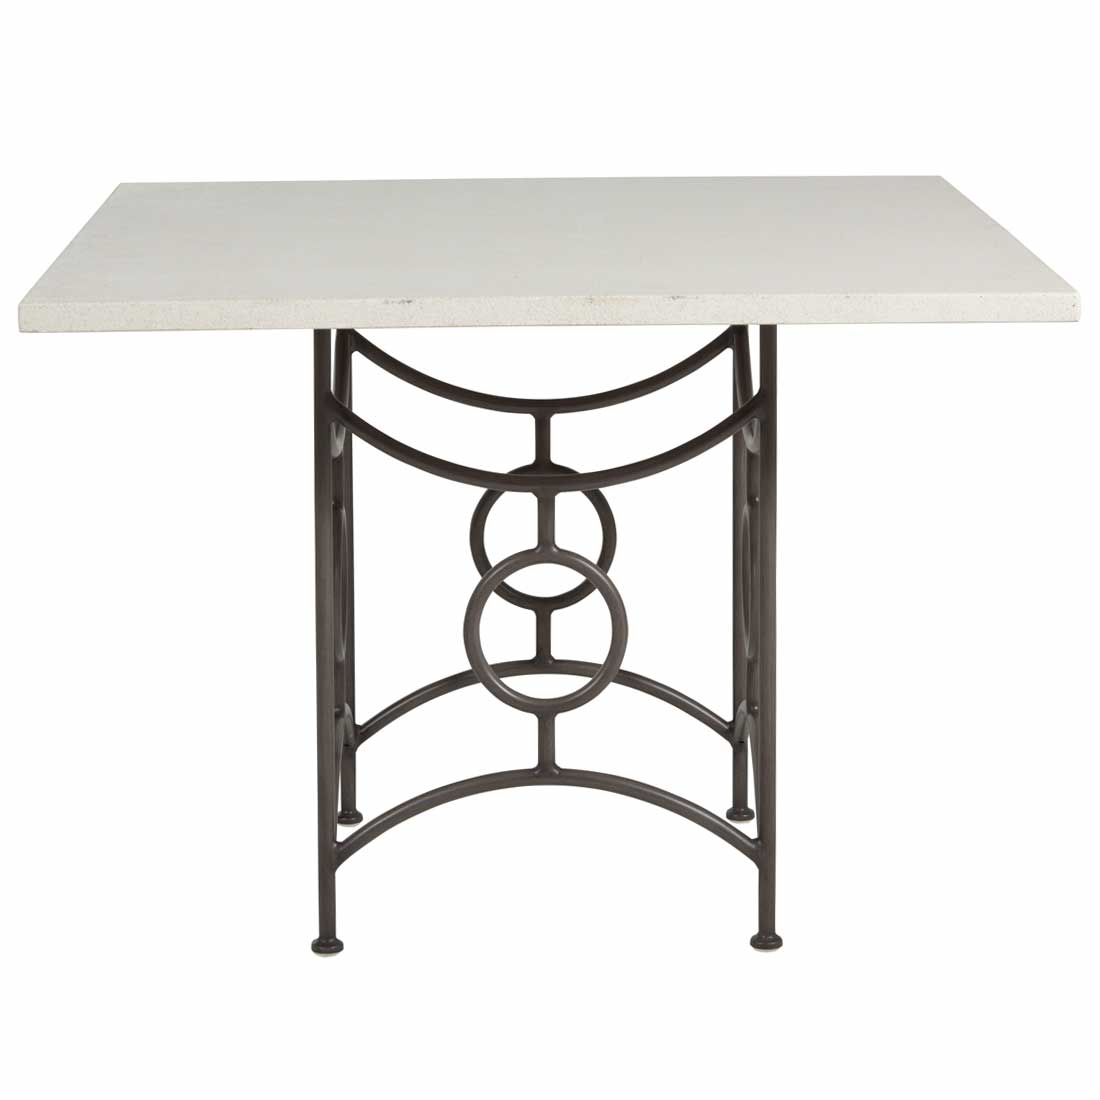 Trestle Square Dining Table Base Summer Classics Contract